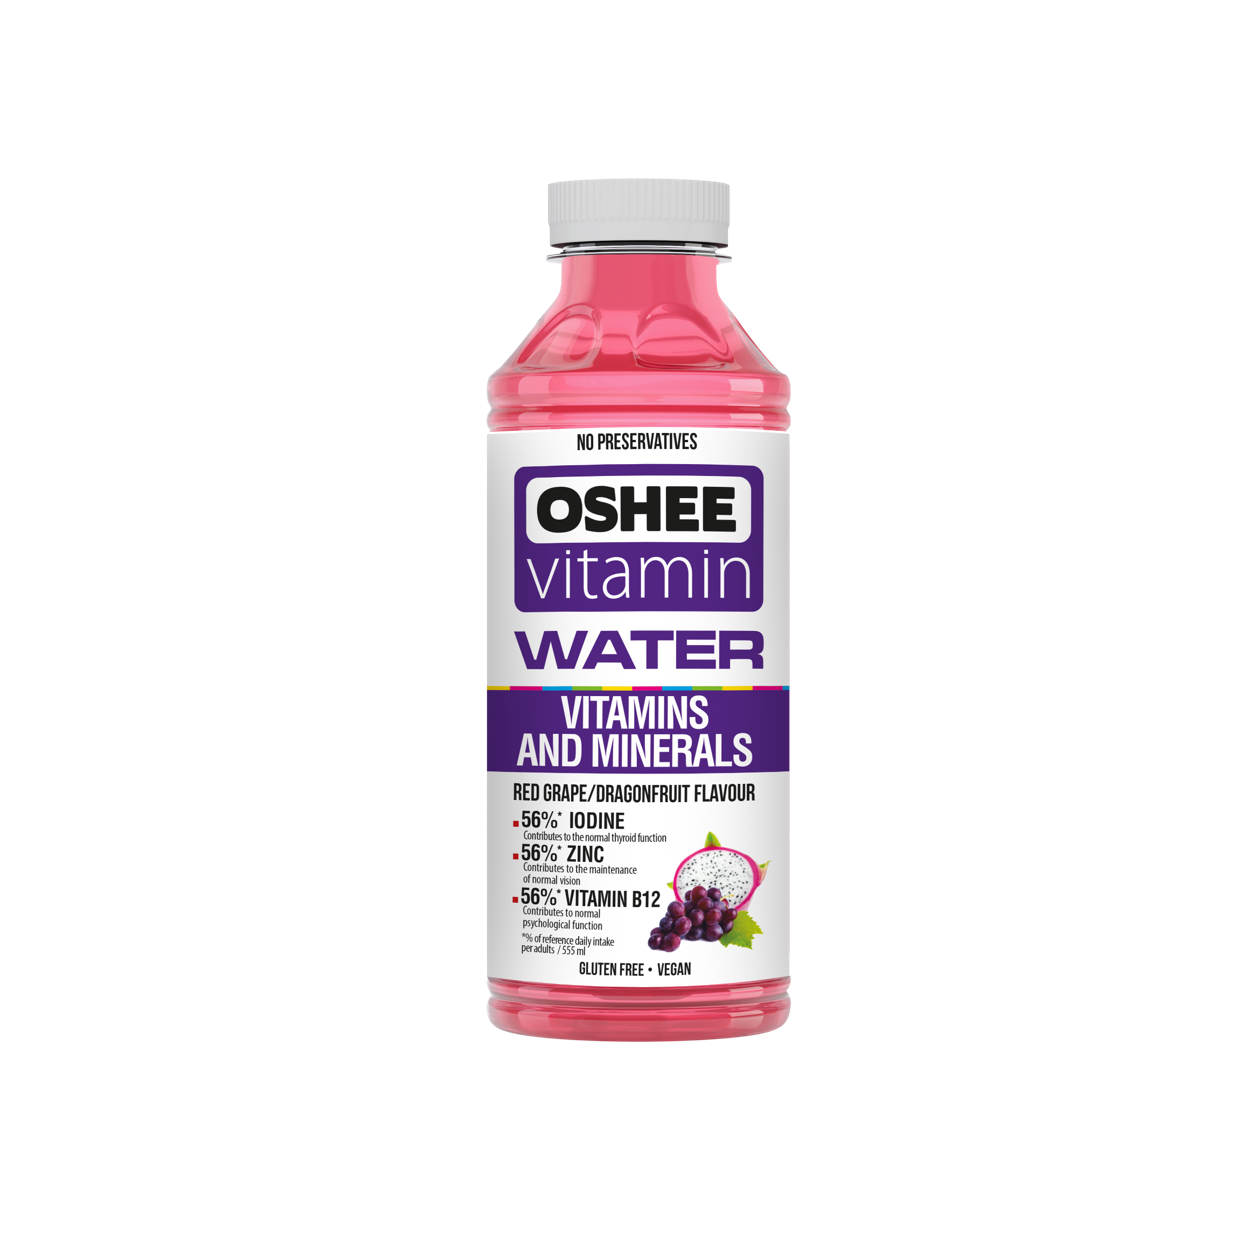 OSHEE vitamin water red grape and dragon fruit